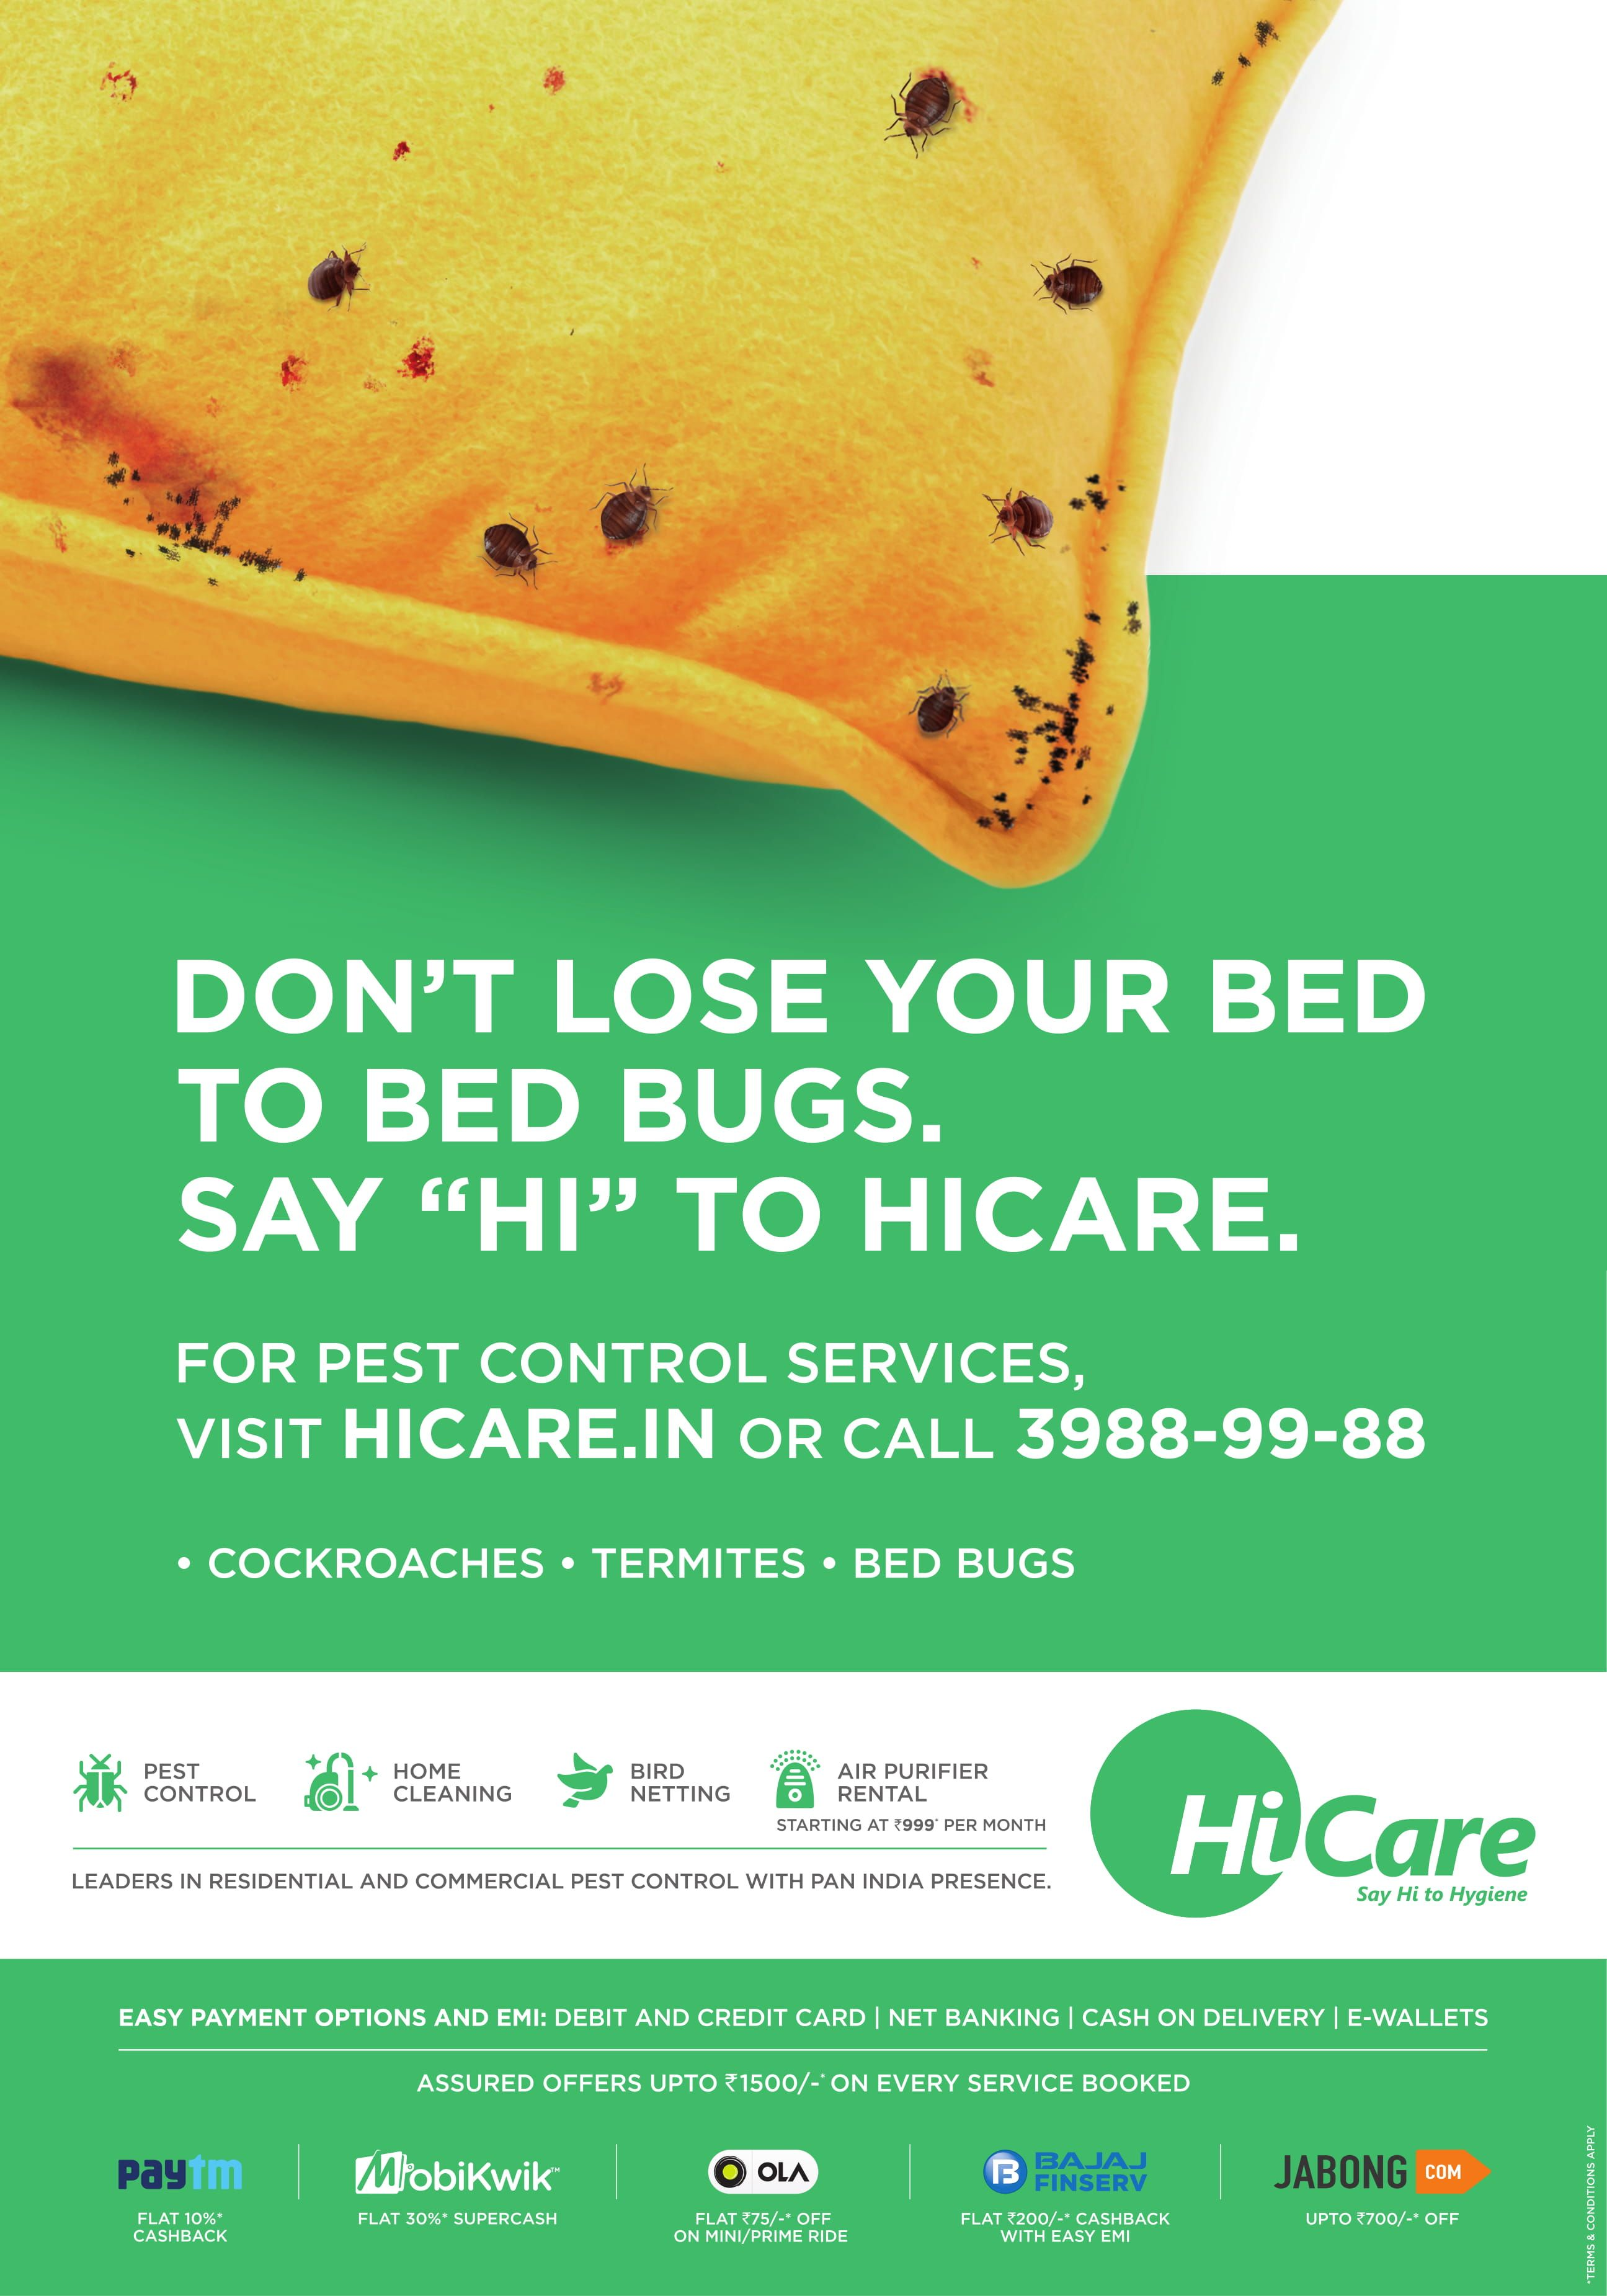 HiCare, India's best and no. 1 Cockroach Pest Control